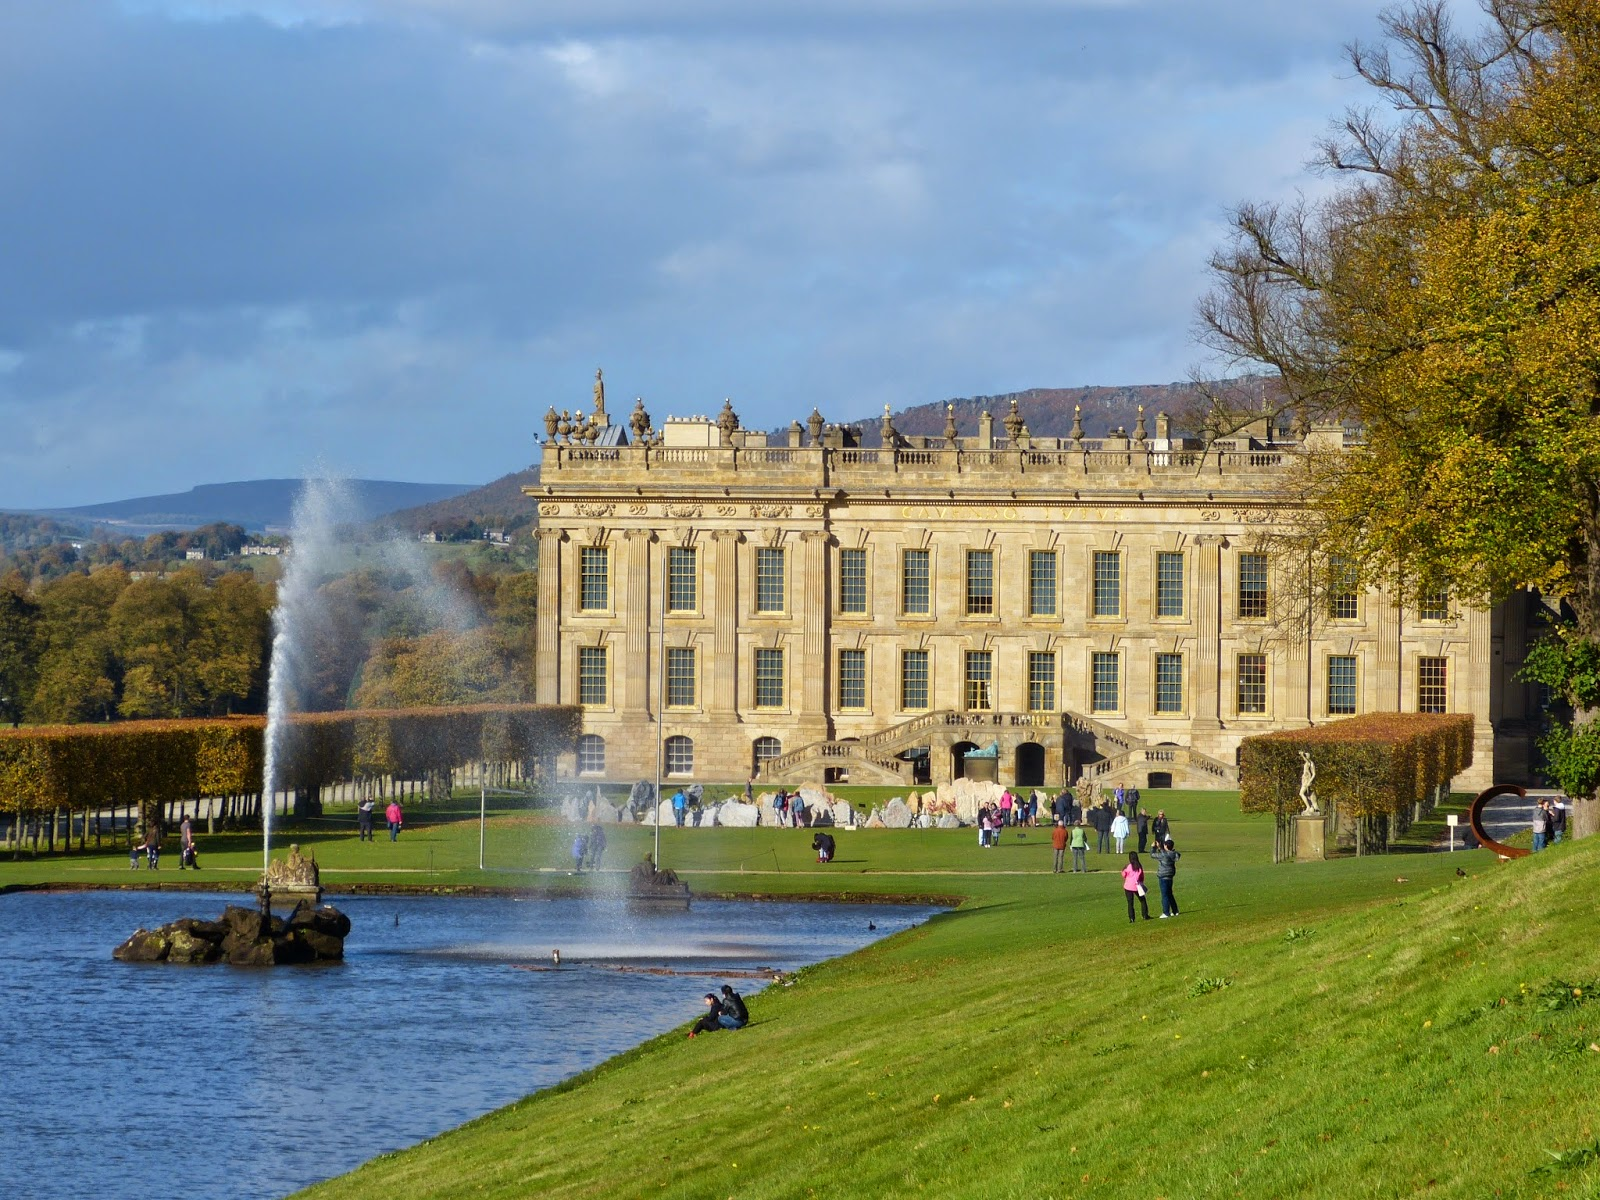 The Chatsworth House Hotel